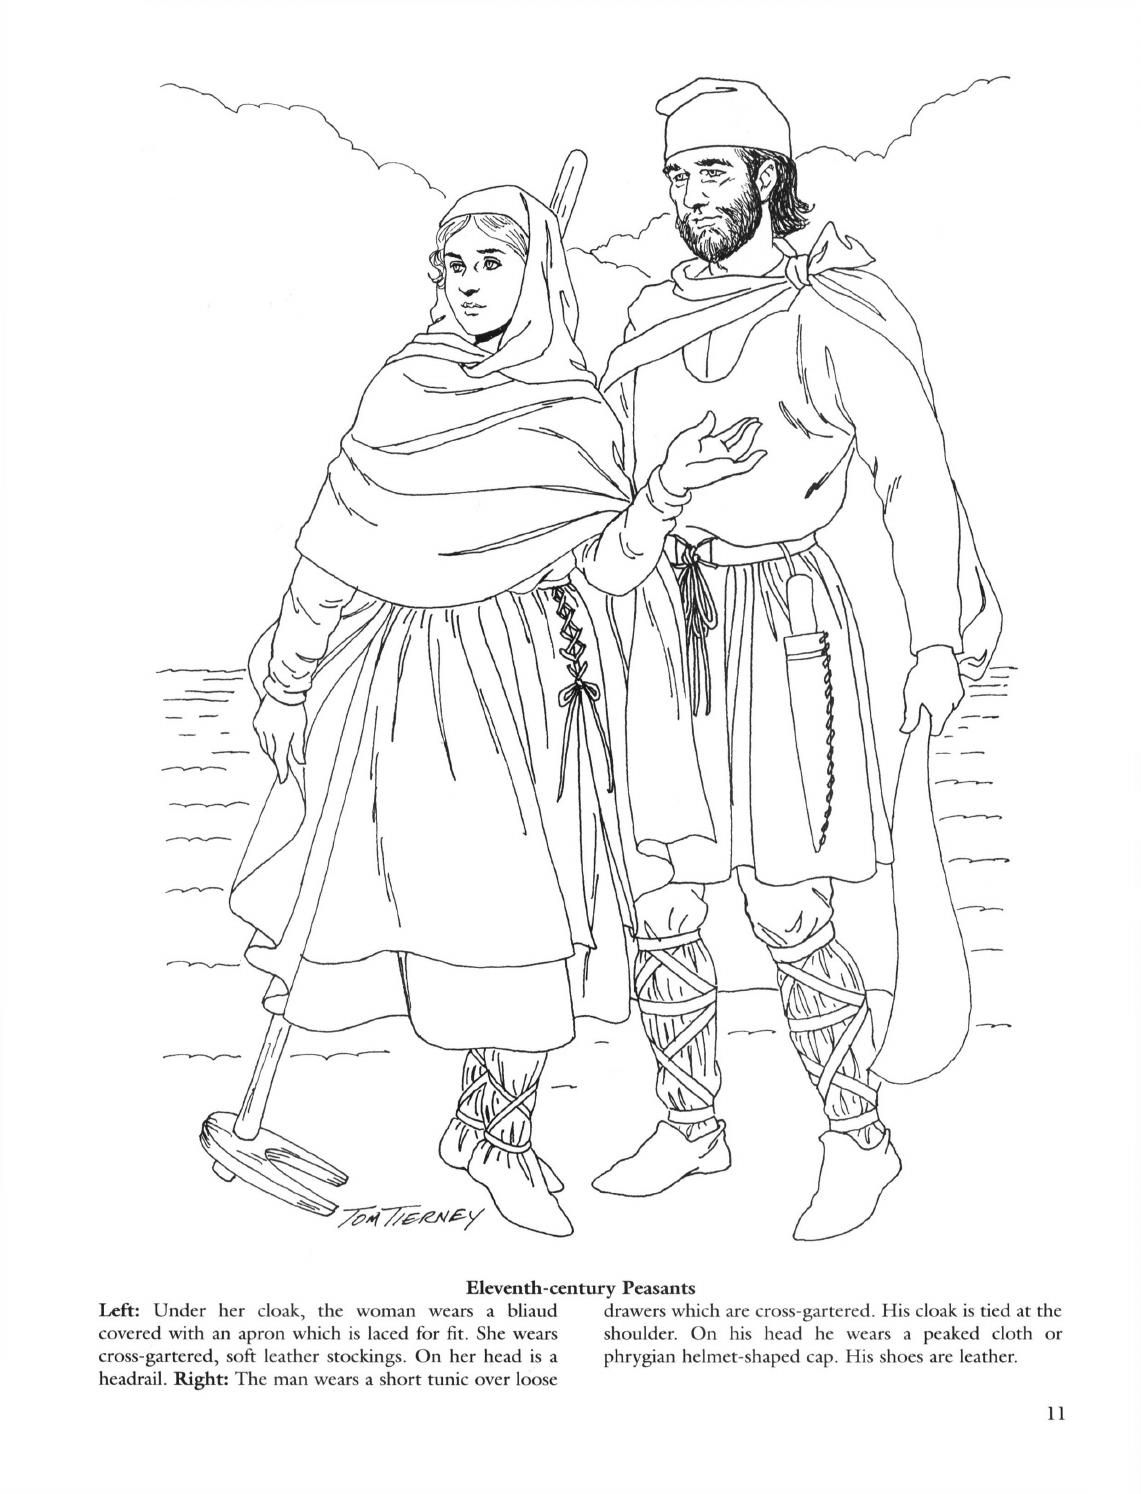 Medieval fashions coloring book | Coloring Pages | Pinterest ...